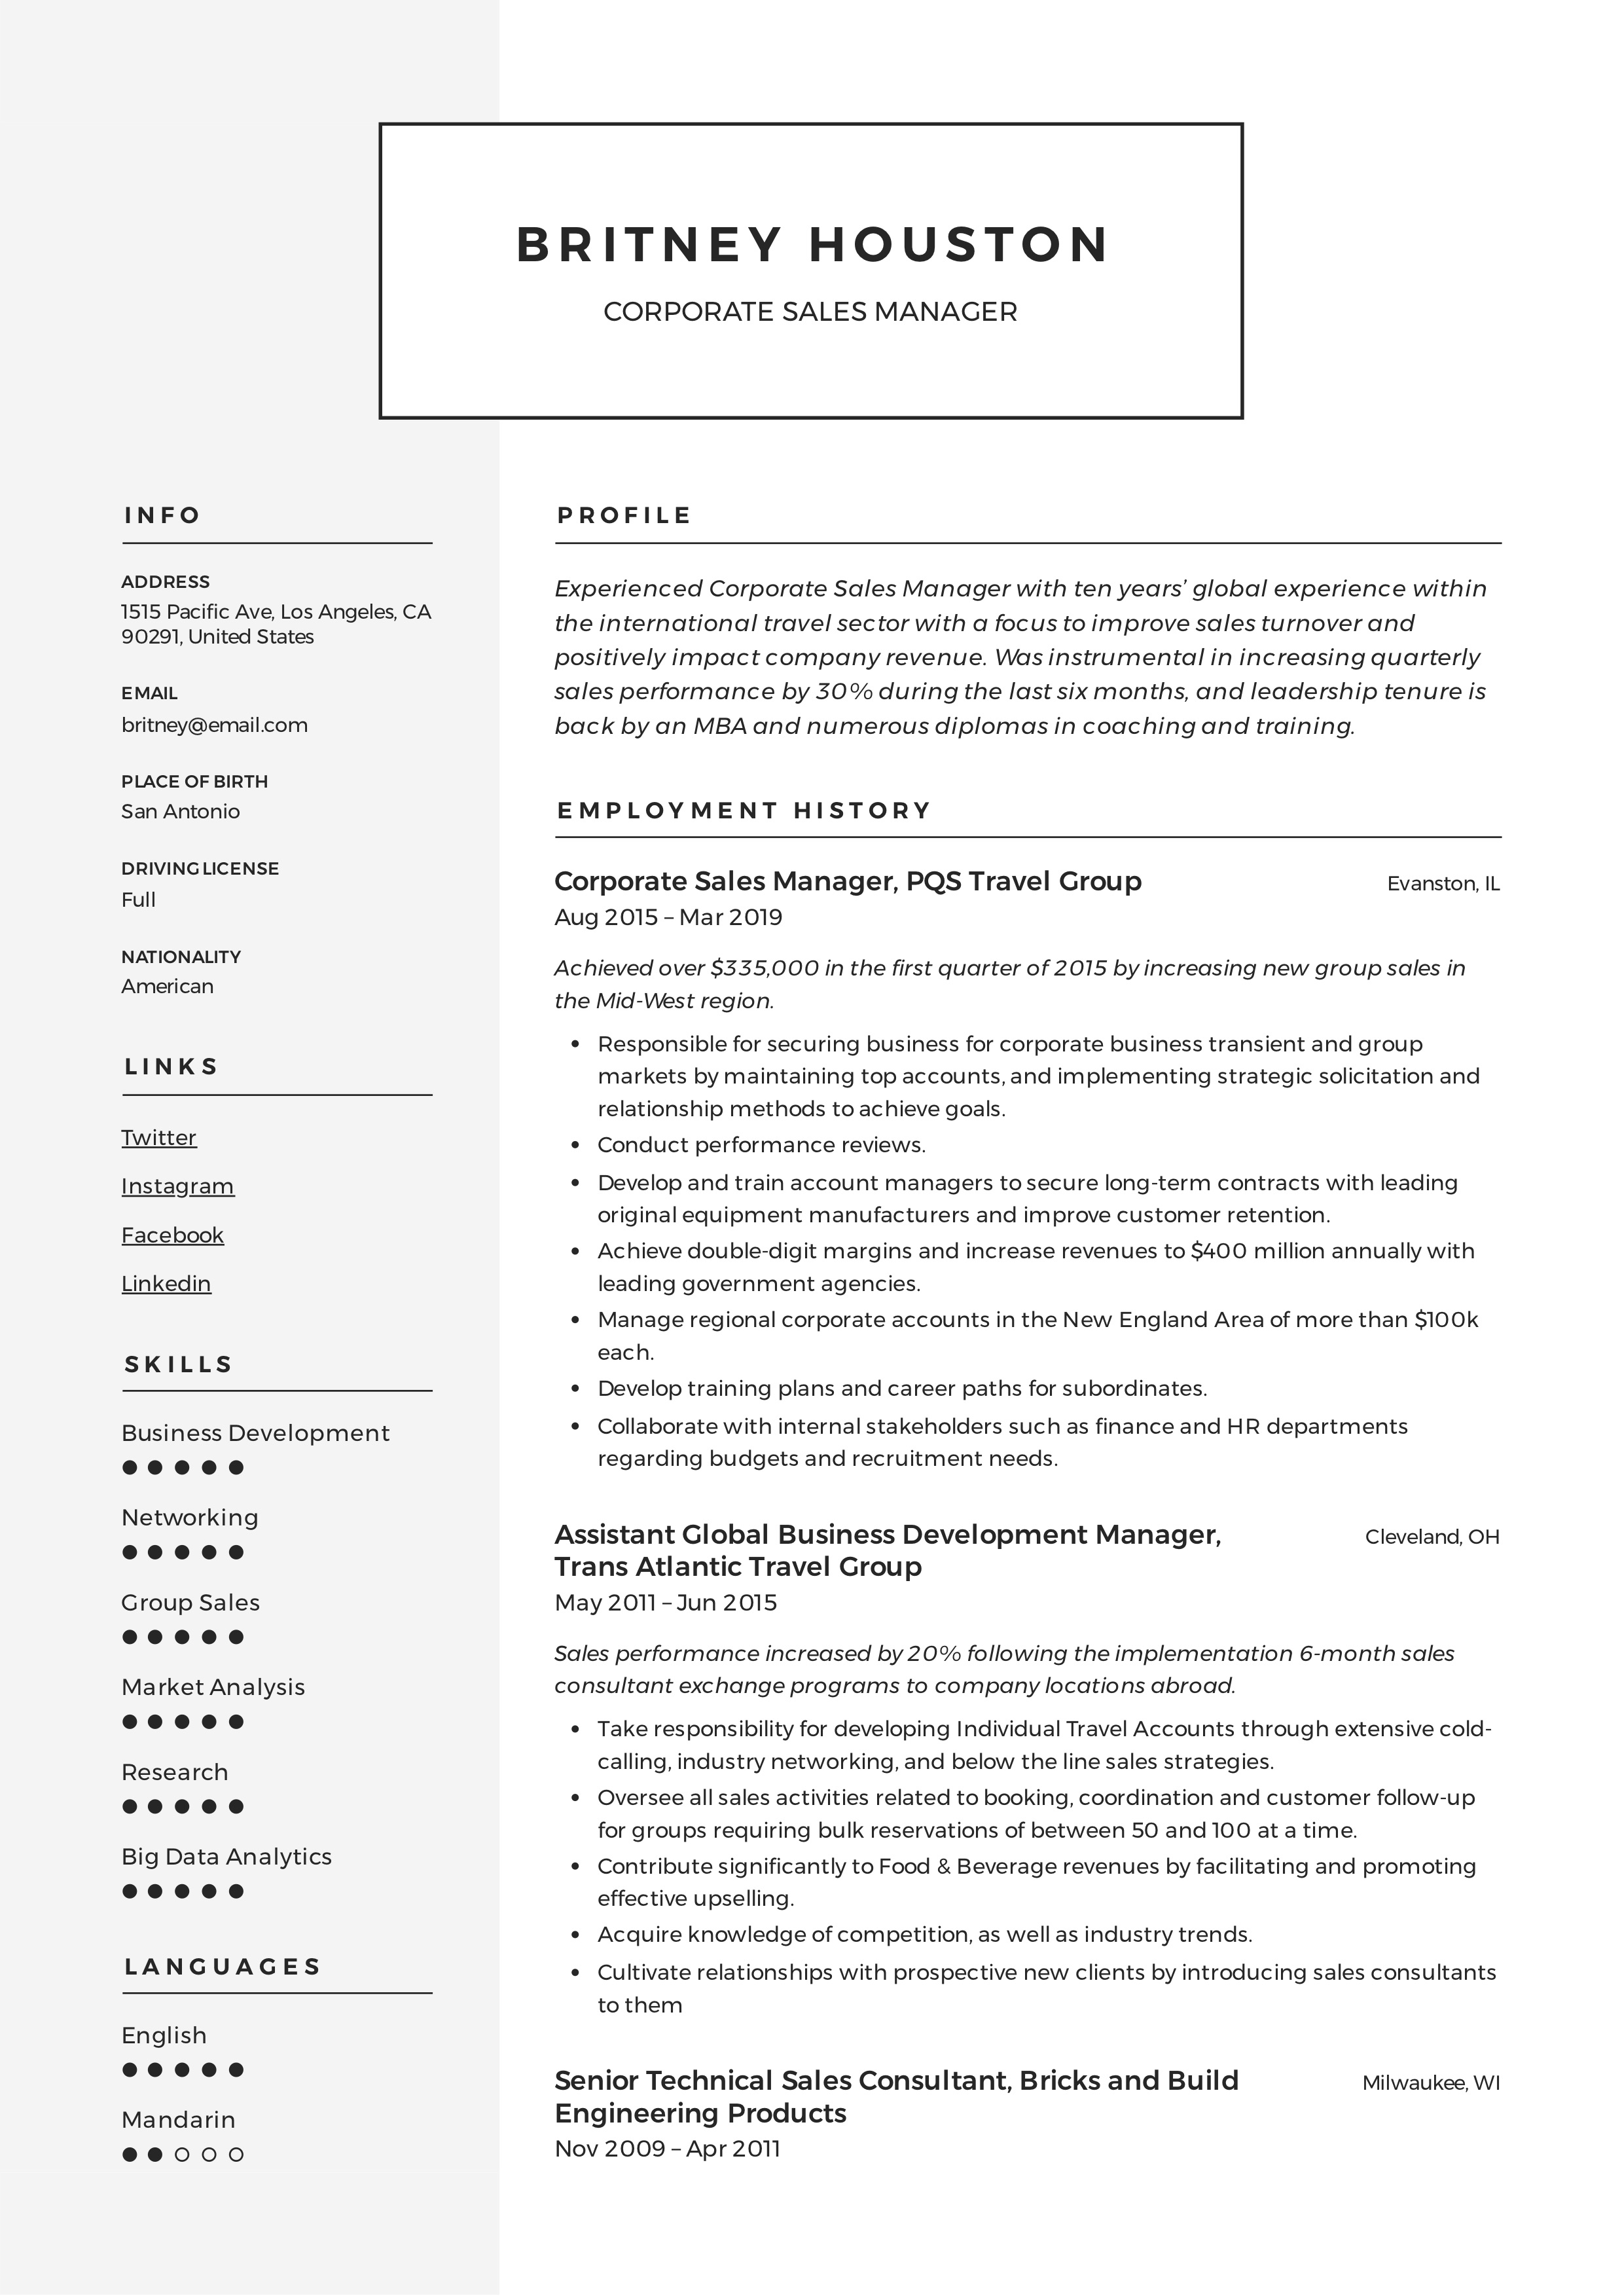 Corporate Sales Manager Resume